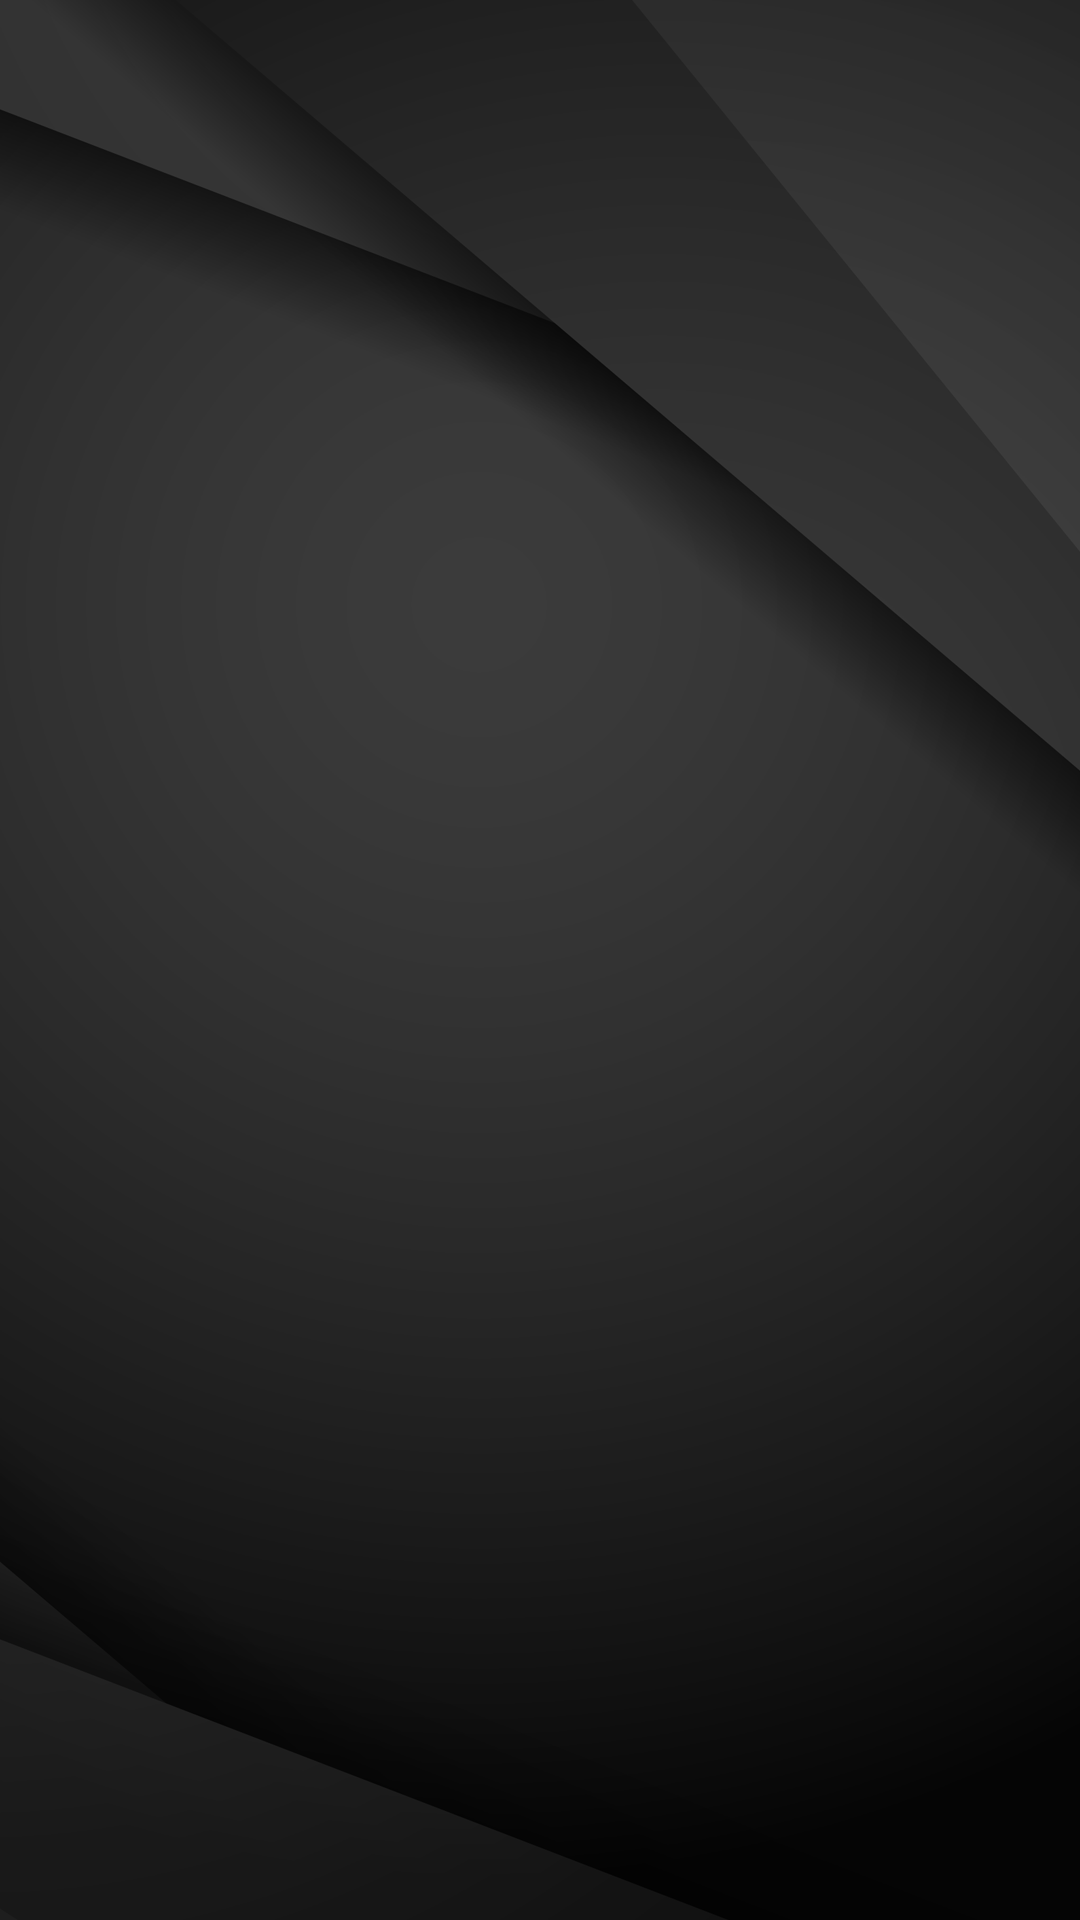 1080x1920 Ultra HD Dark Abstract Wallpaper For Your Mobile Phone ...0075